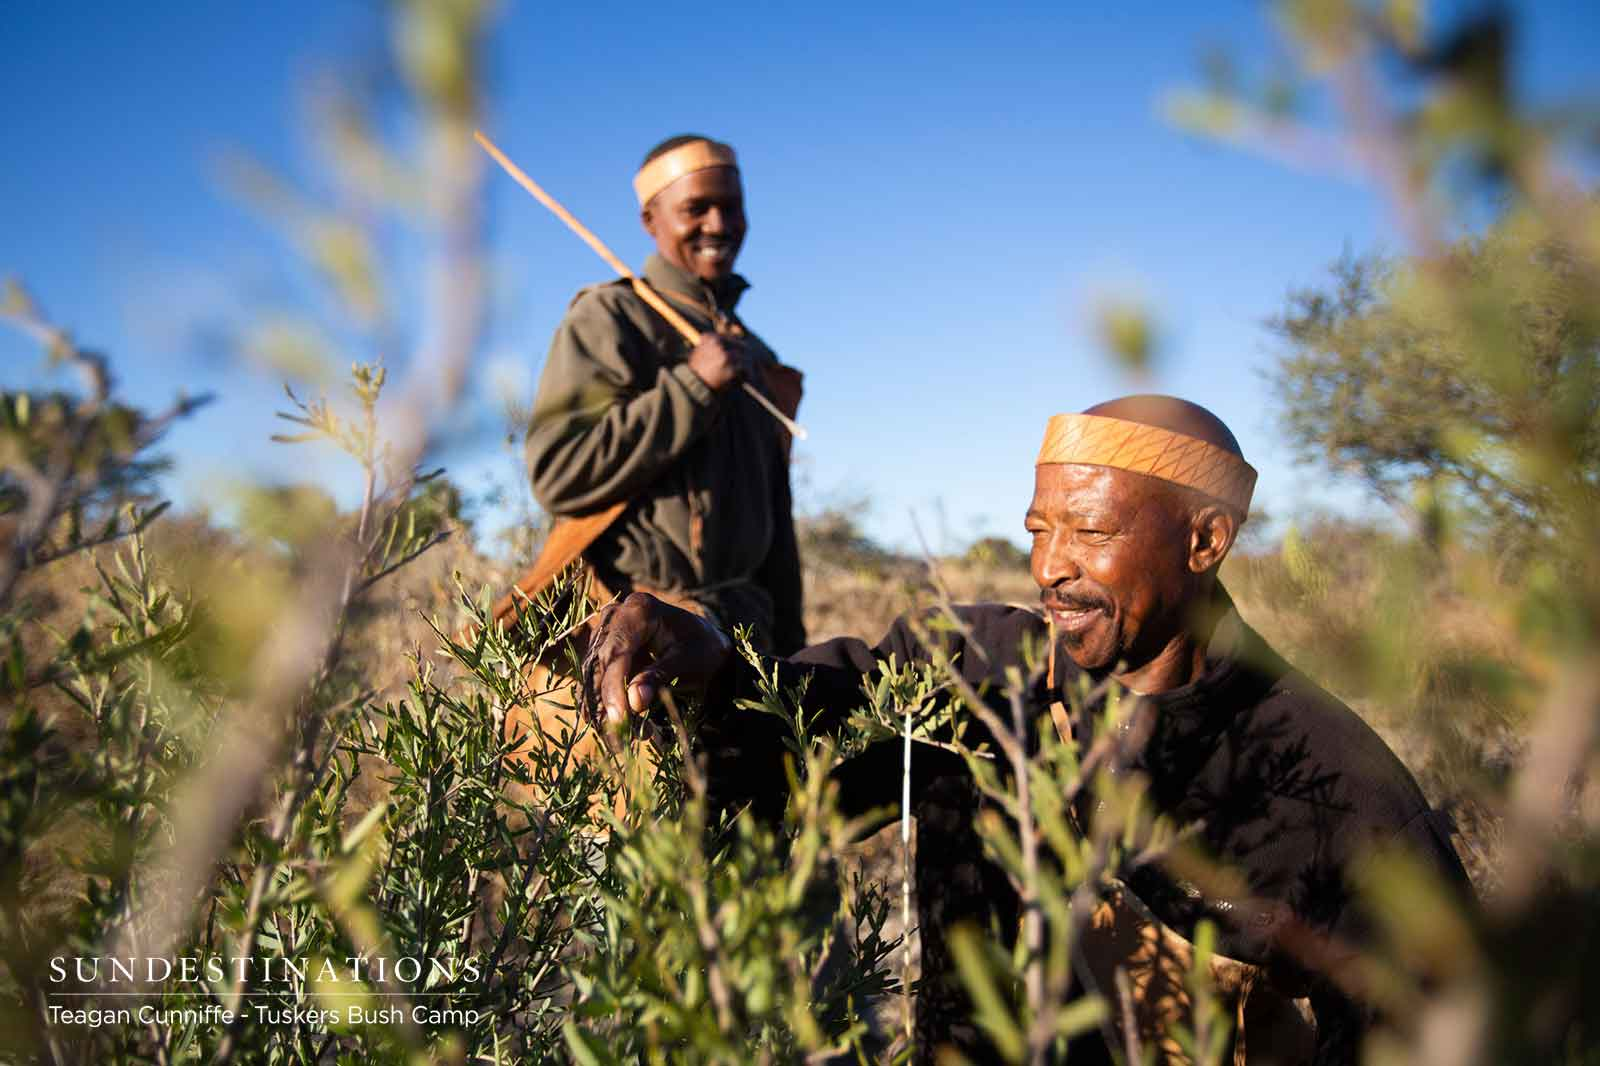 Two Bushmen at Tuskers Bush Camp